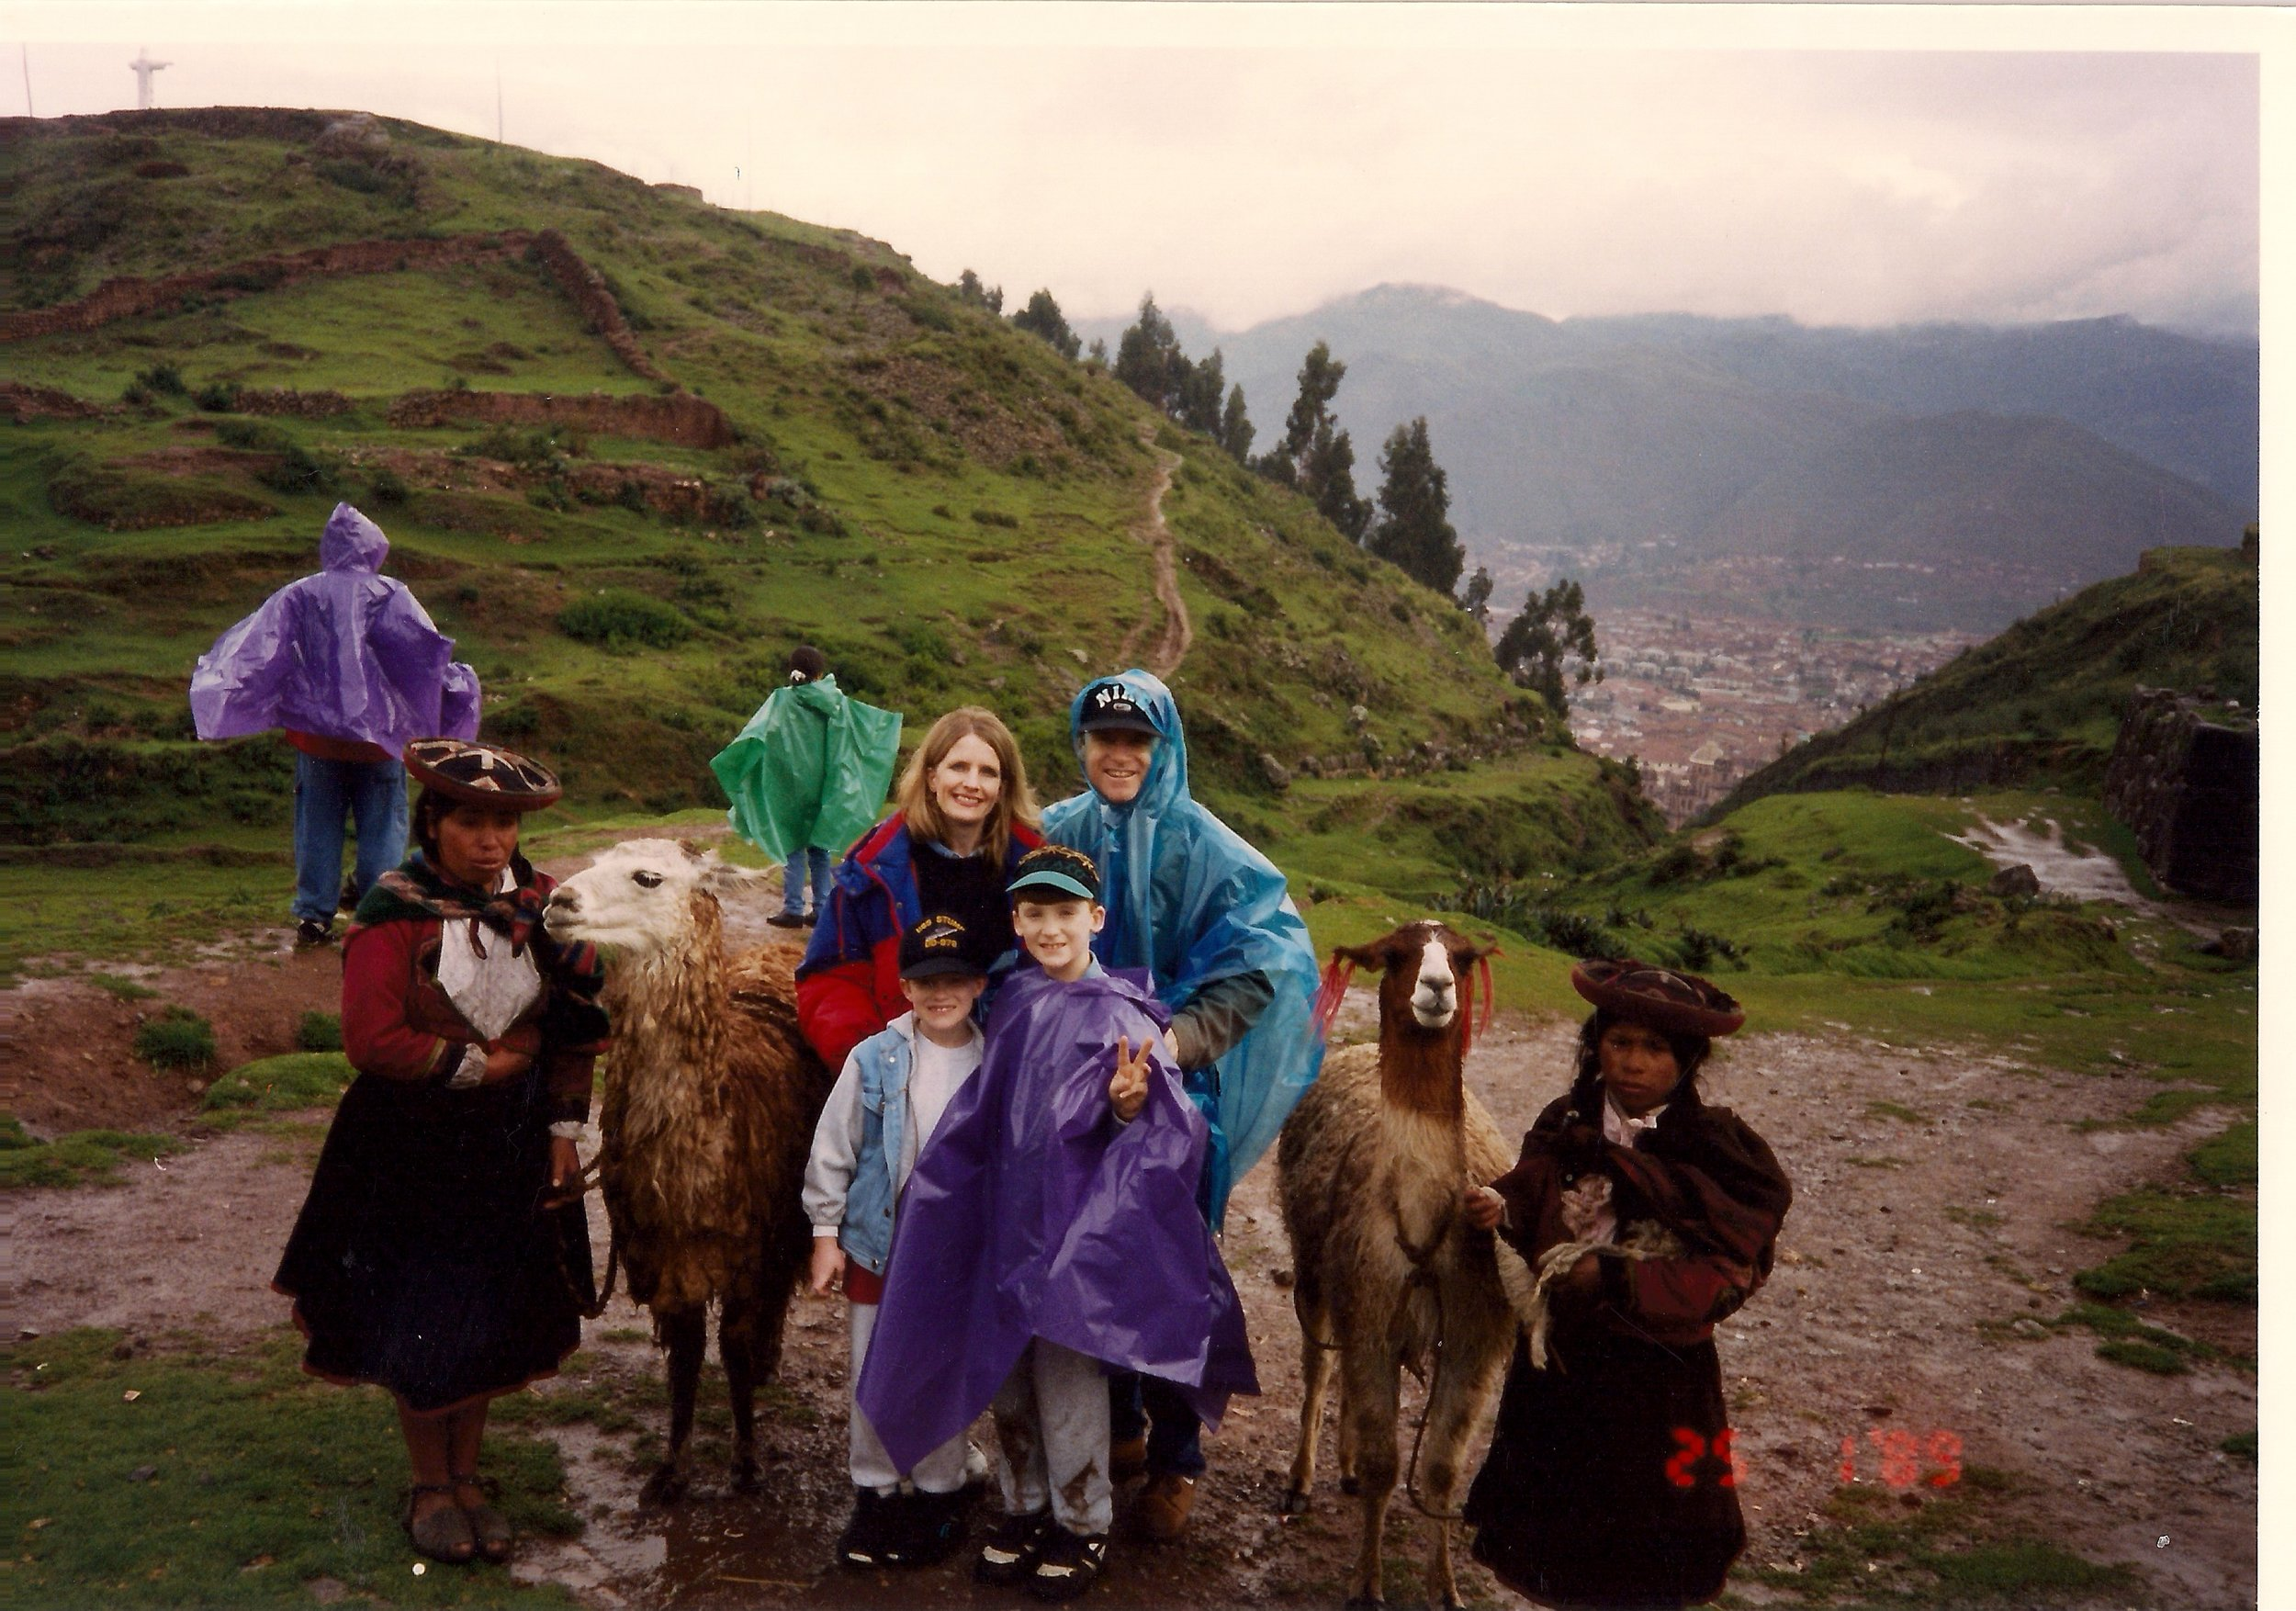 1996_06 Cuzco city-wide Christian Concert for 800 people.jpg